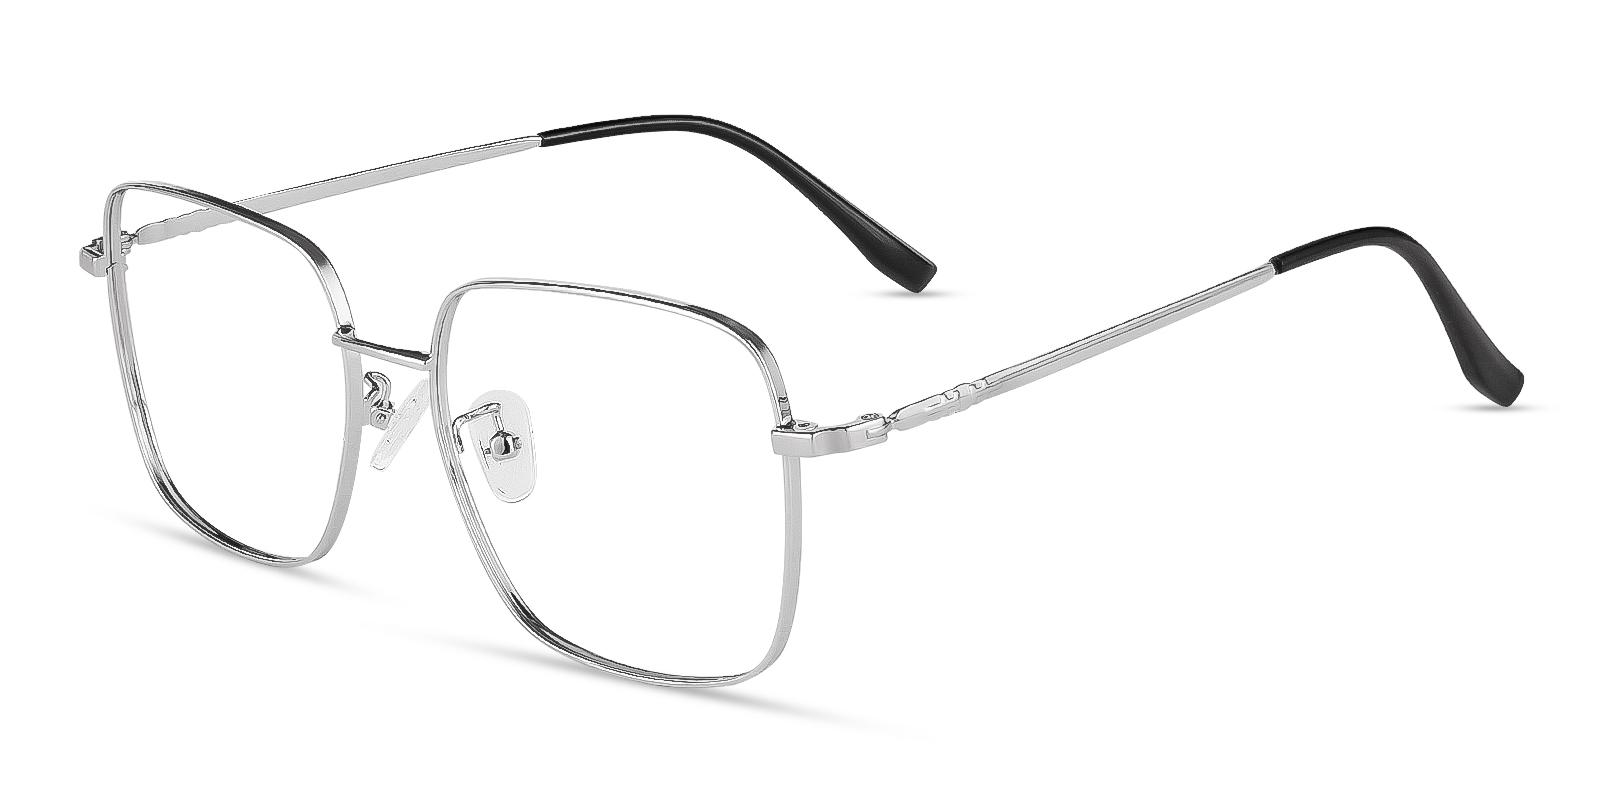 Rolita Silver Metal Eyeglasses , Fashion , NosePads Frames from ABBE Glasses